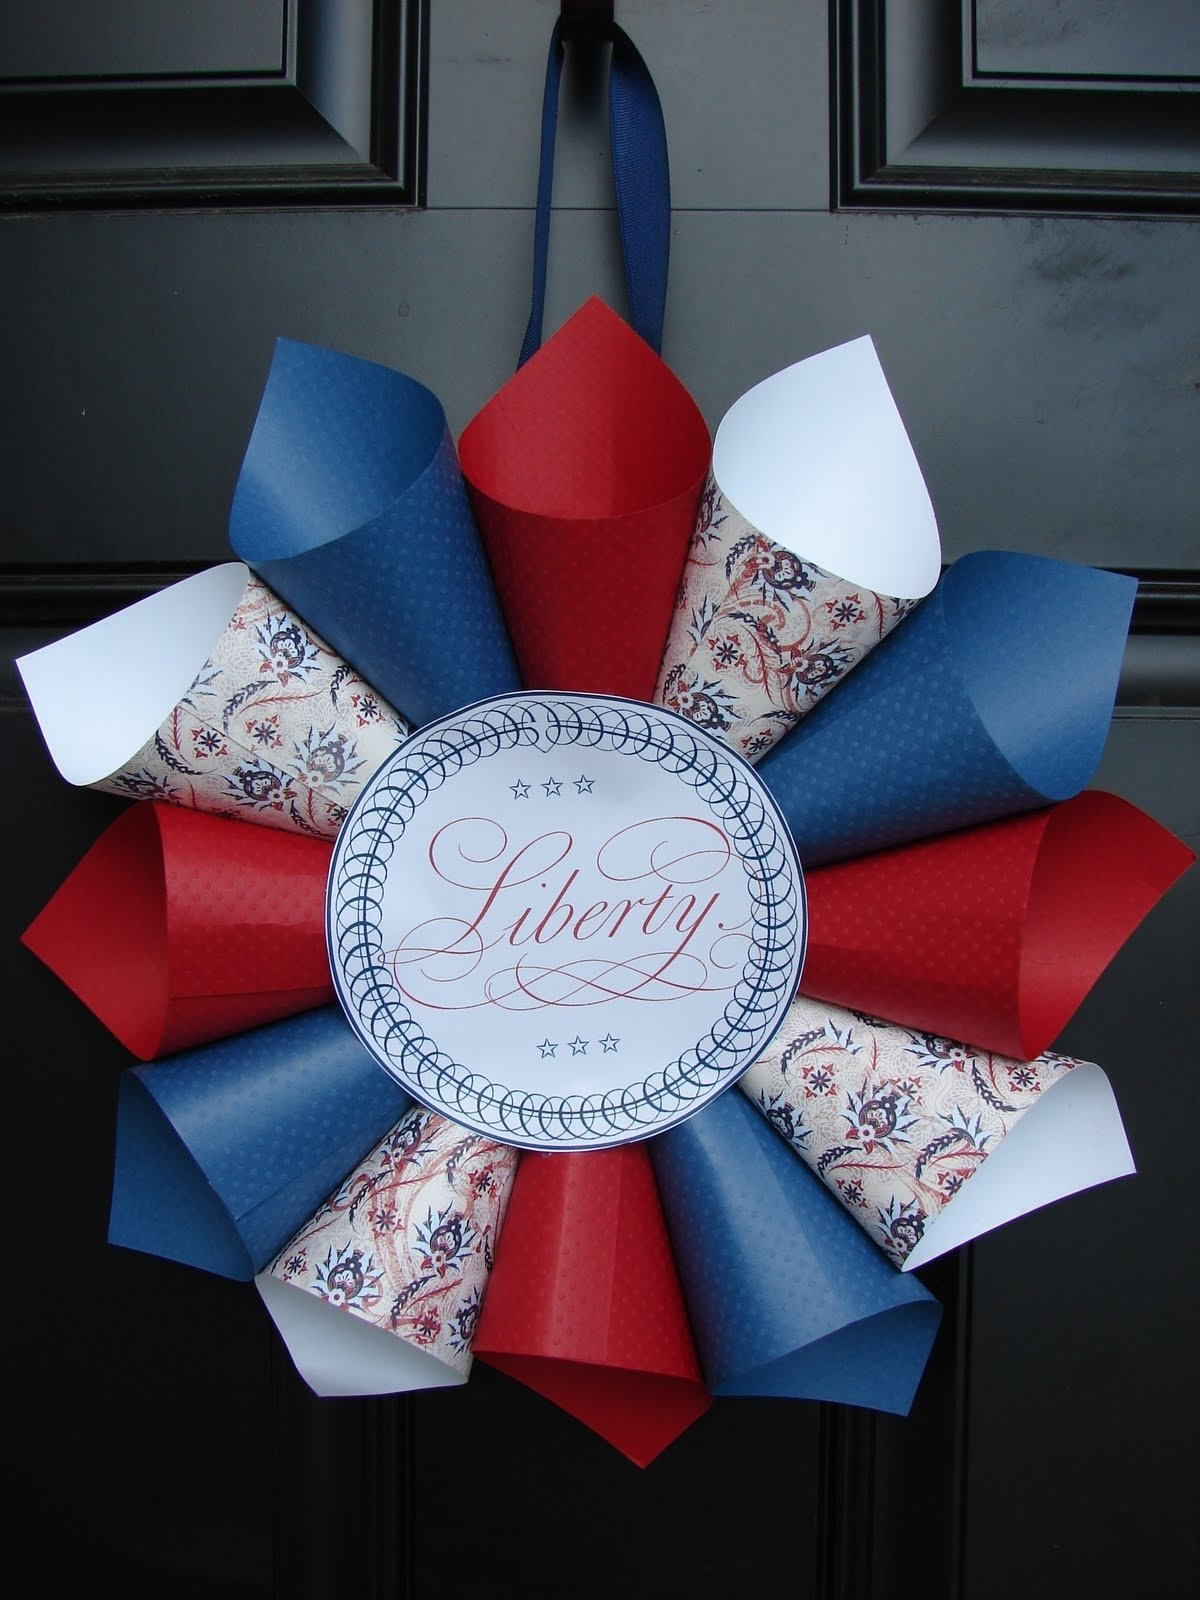 10 Lovely Fourth Of July Decoration Ideas festive july 4th diy wreaths easy simple inspired wreaths 2 2021